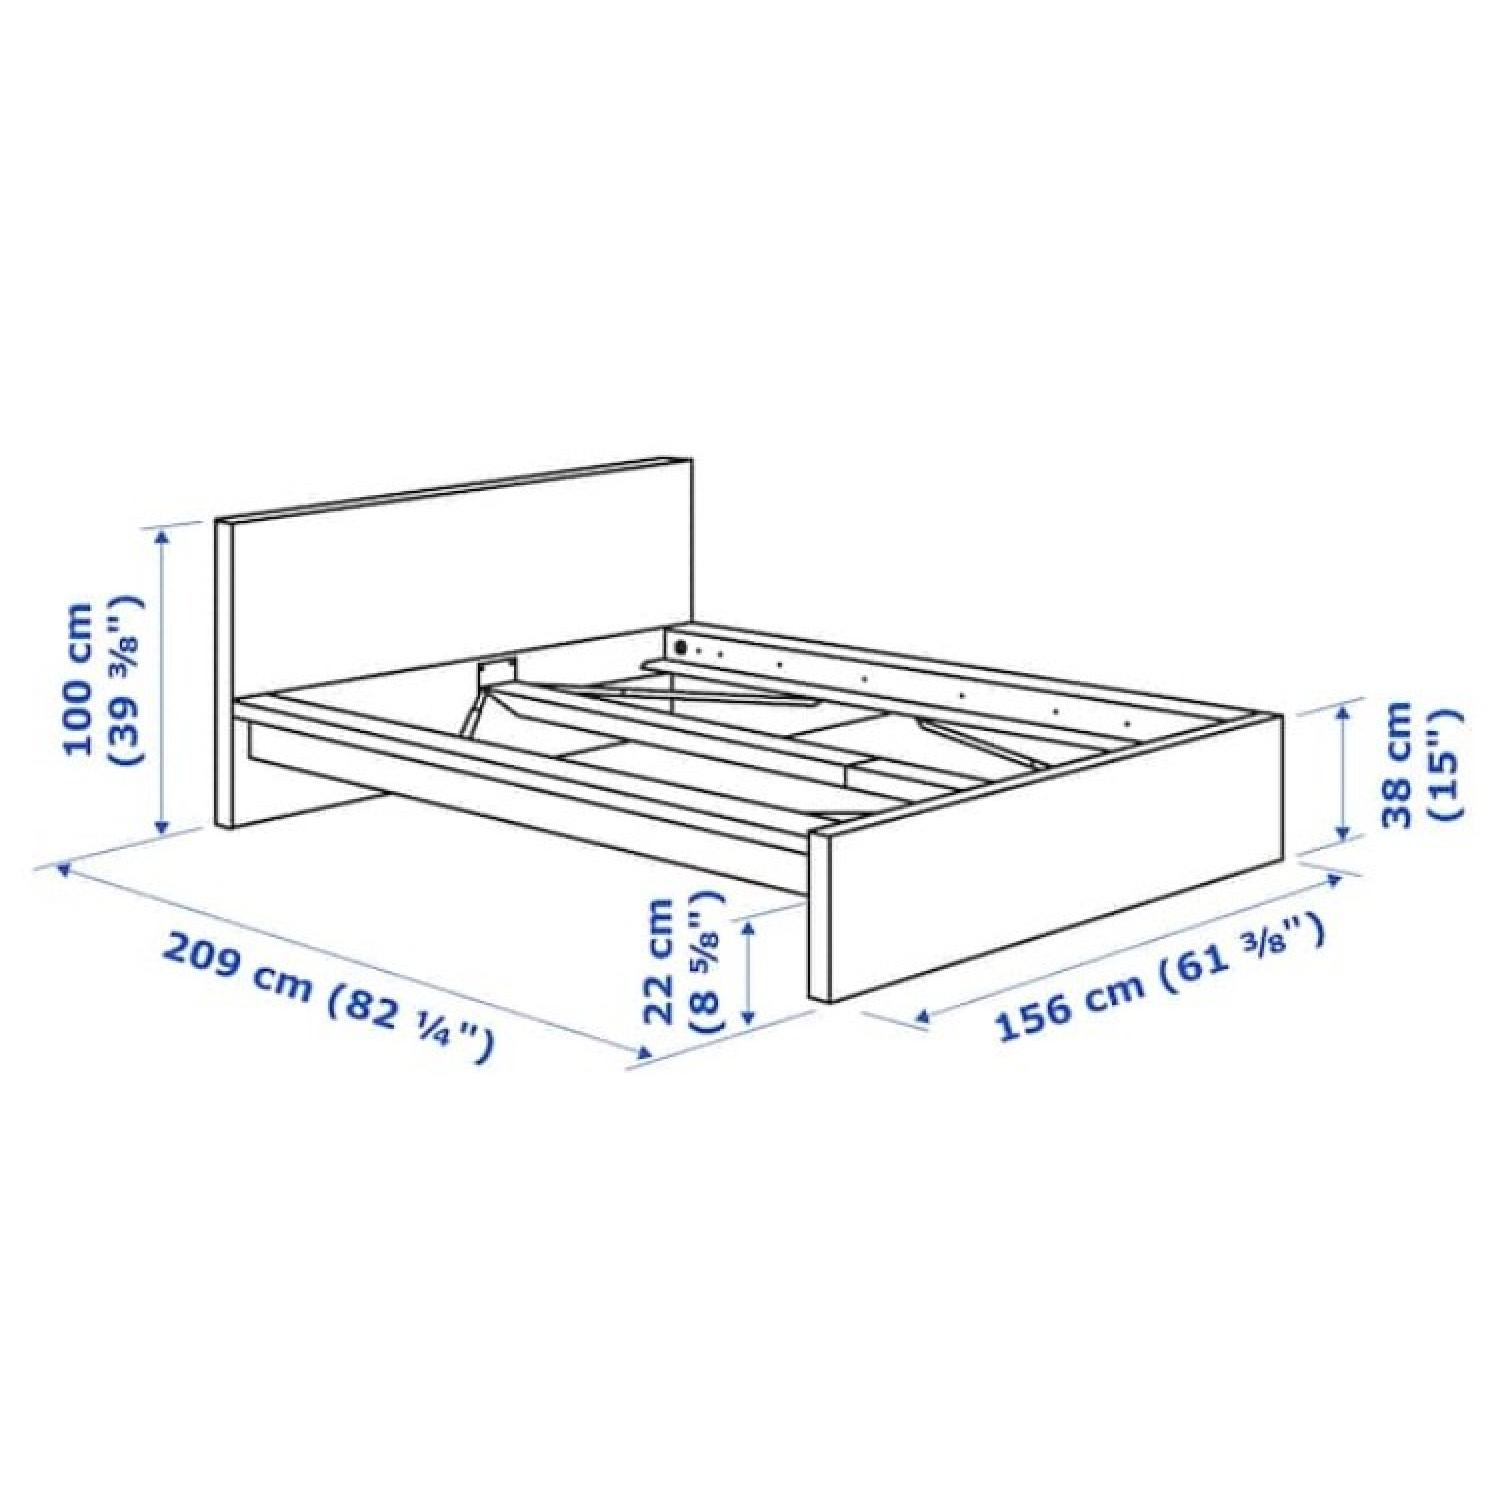 Ikea Malm Full Size Bed